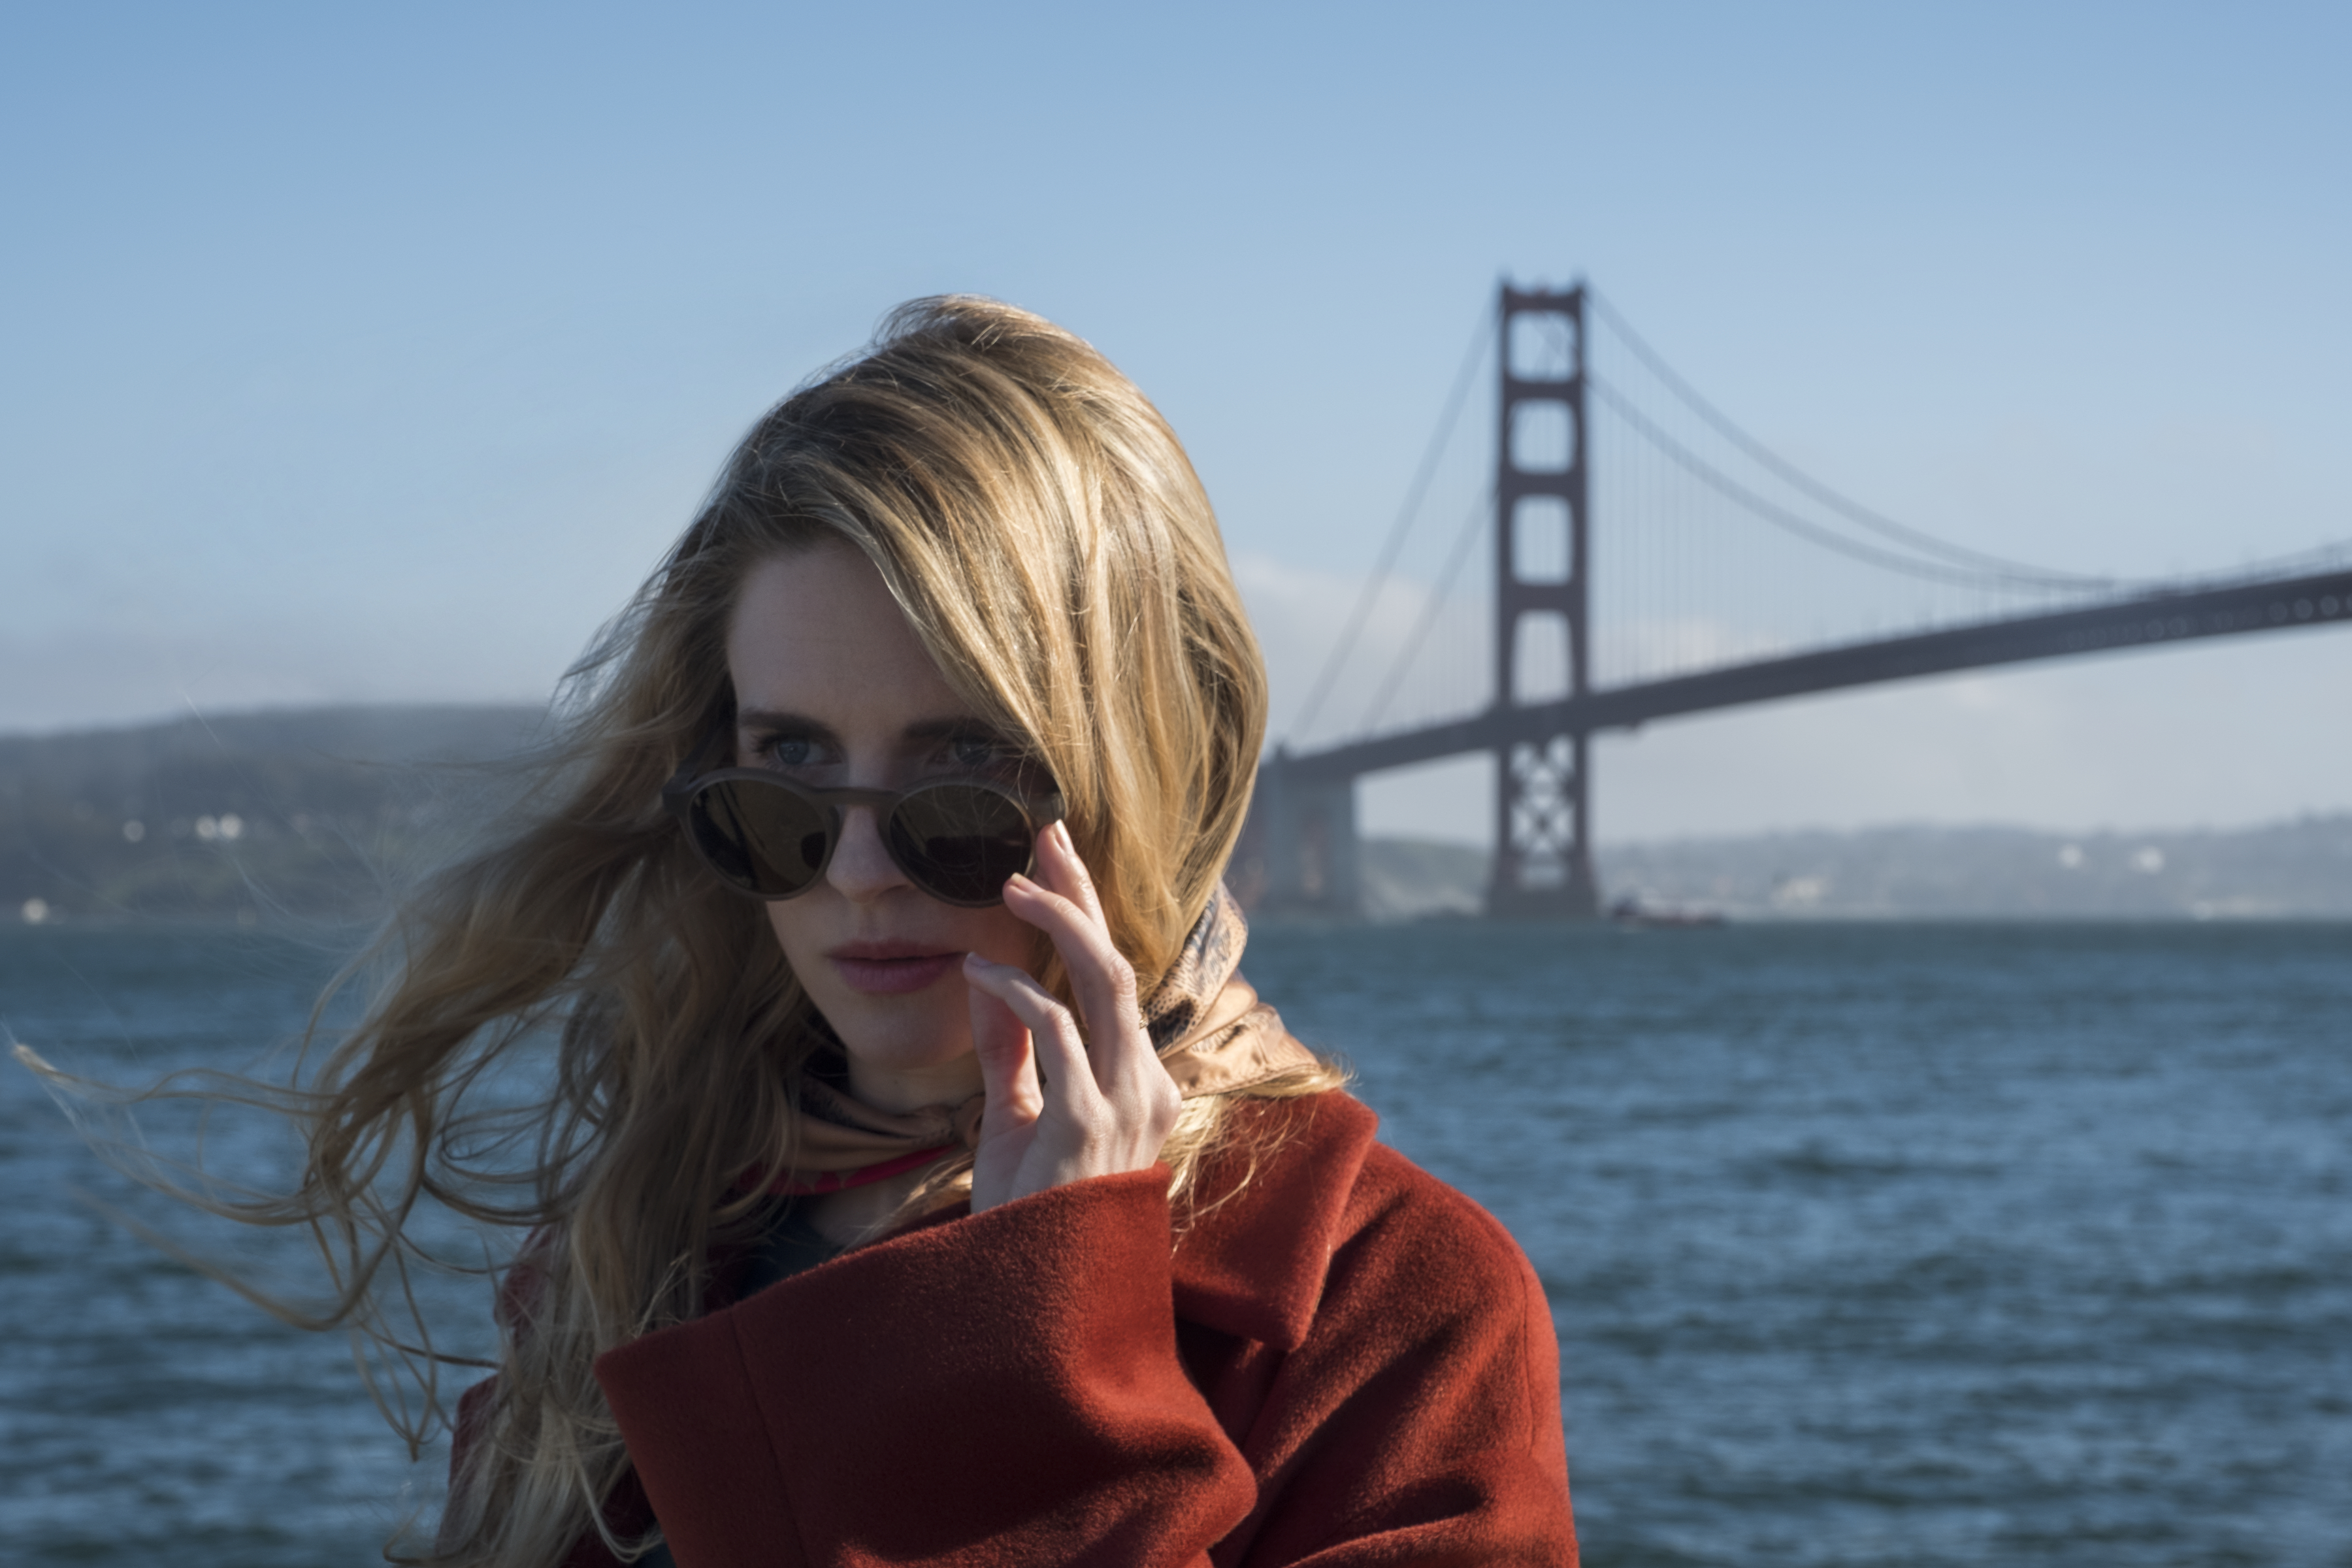 12 Important Details You May Have Missed in 'The OA' | Inverse